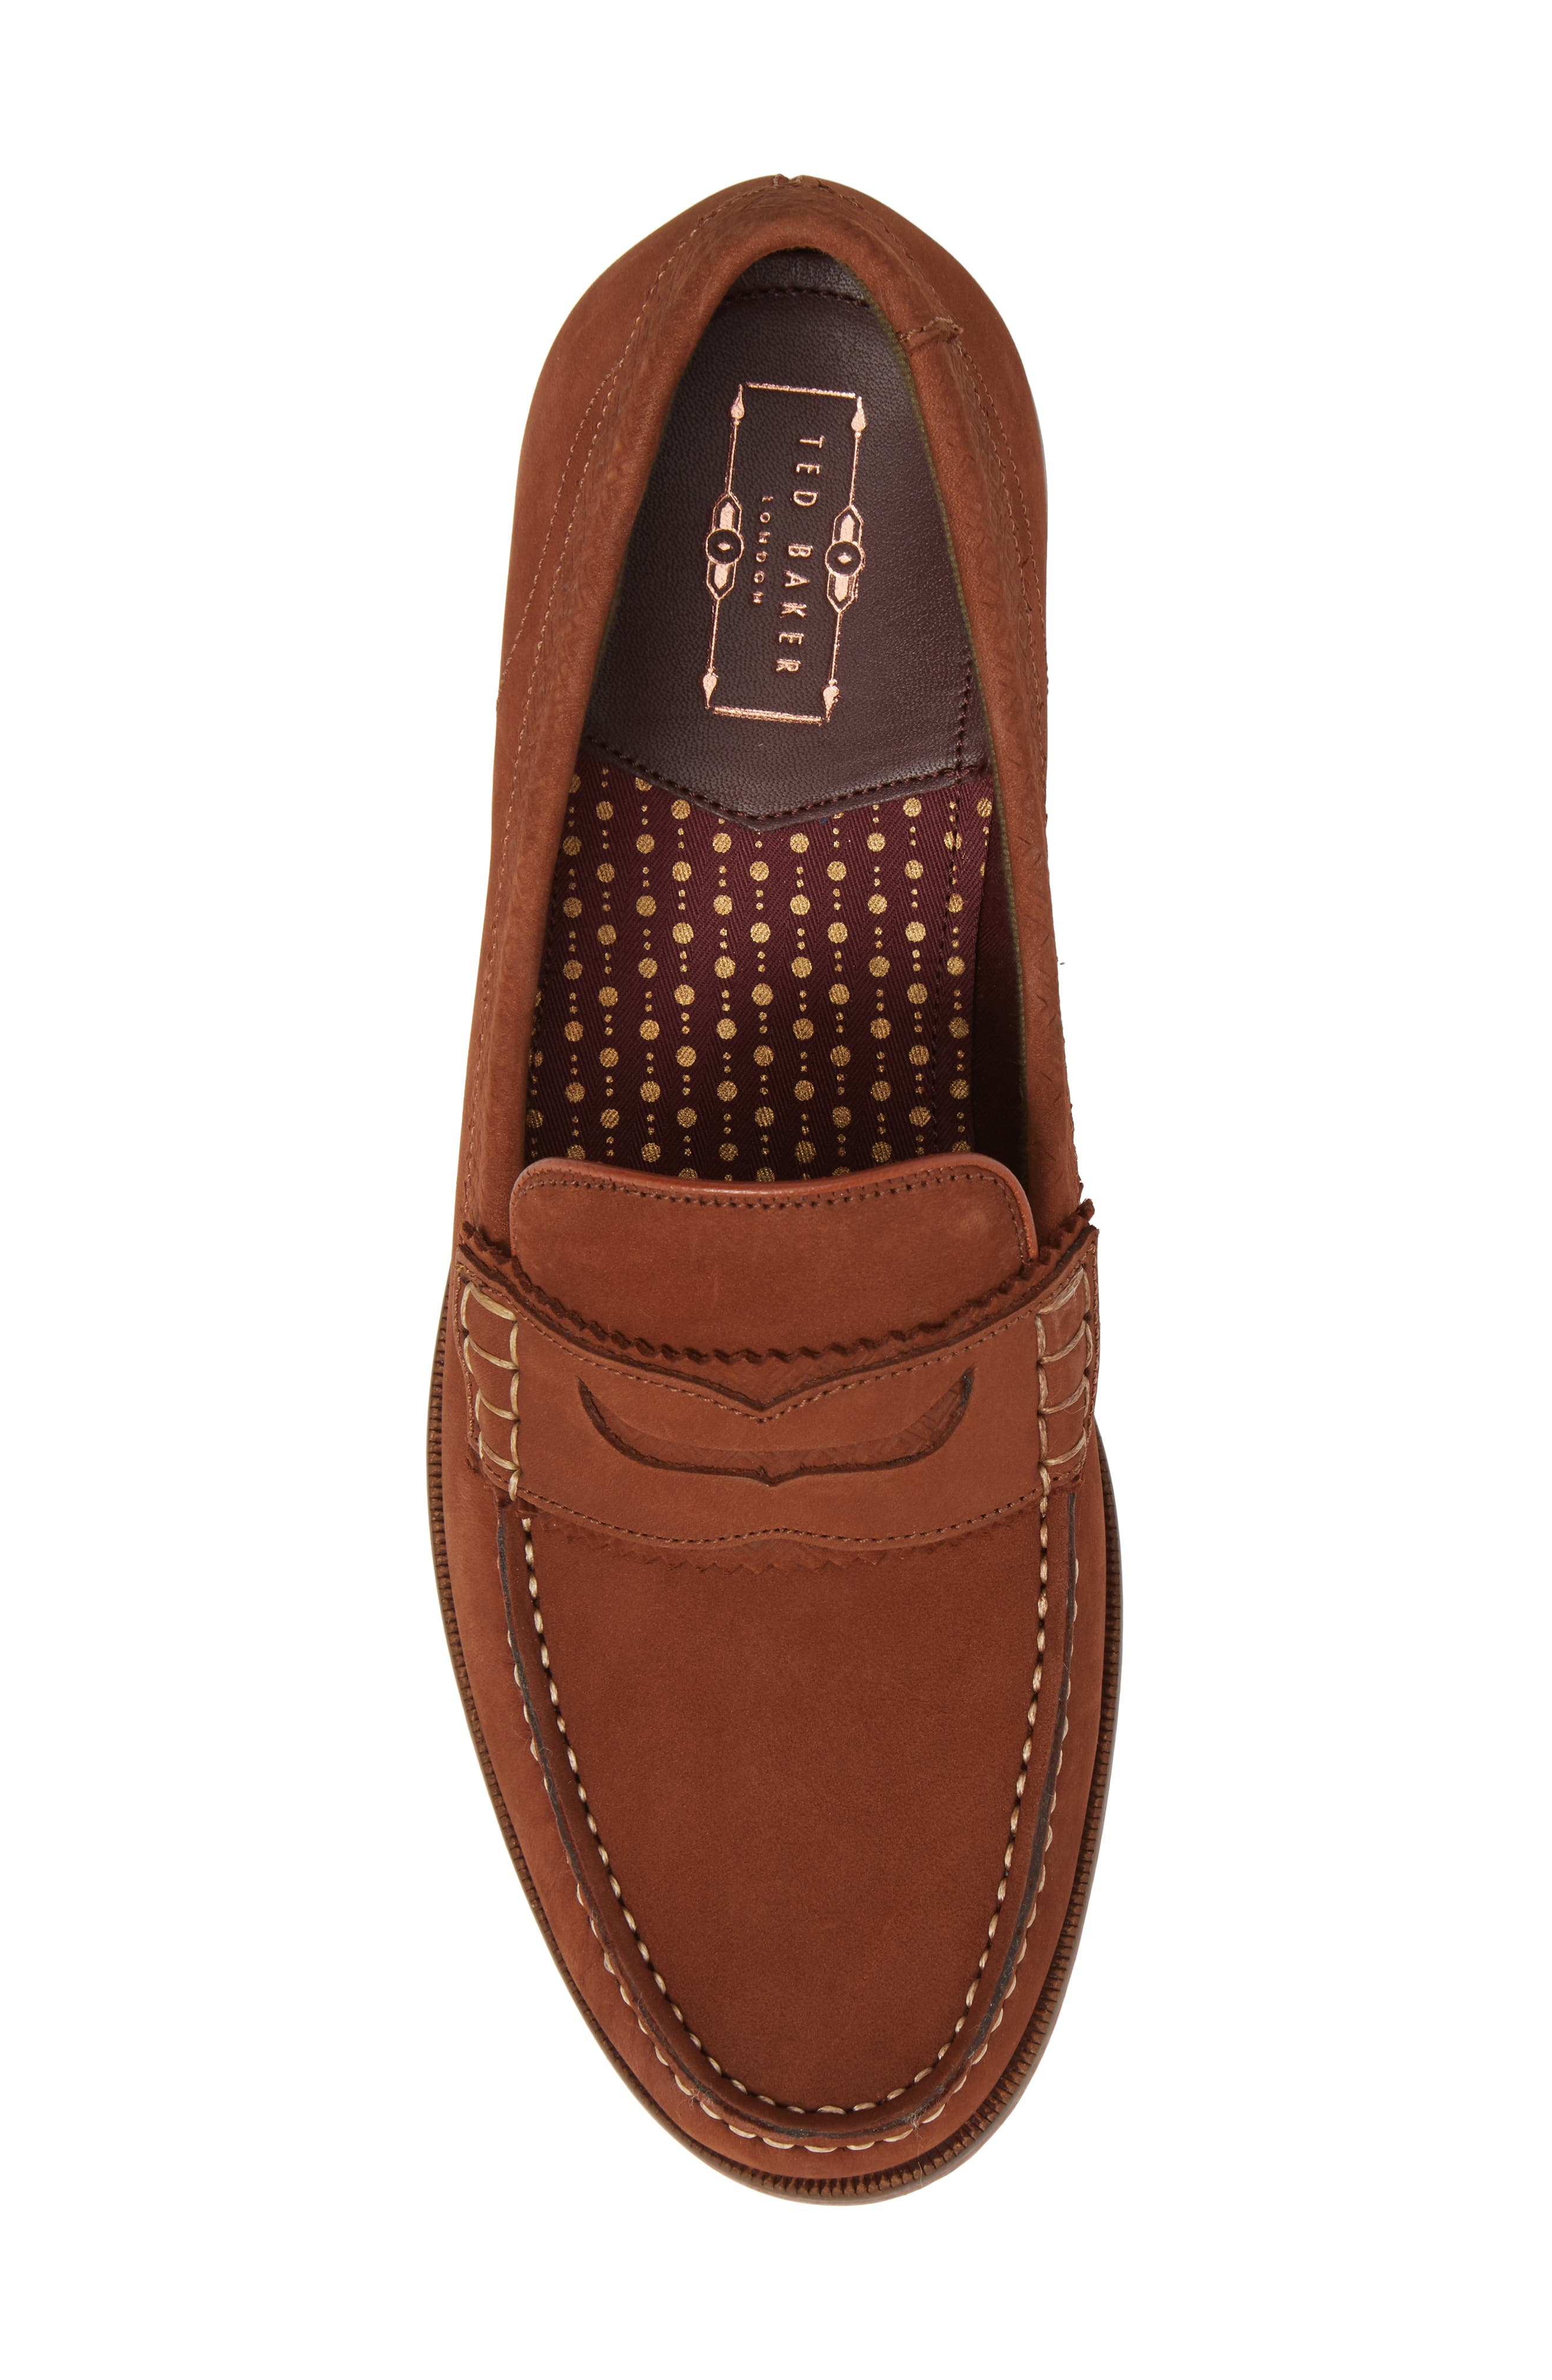 Miicke 5 Penny Loafer,                             Alternate thumbnail 5, color,                             209